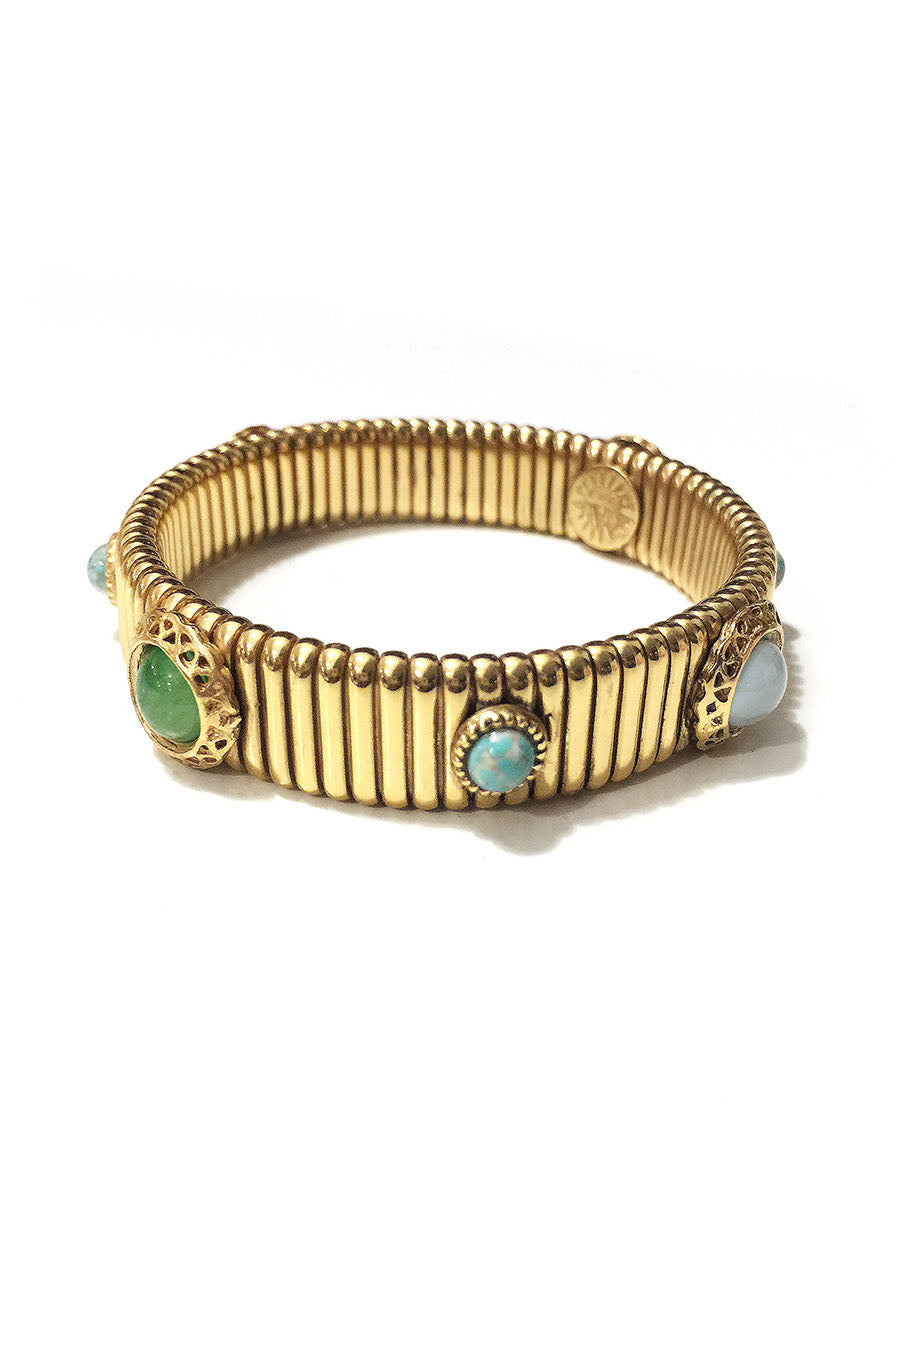 Thick 24K Gold Plated Cuff with Set-in Stones